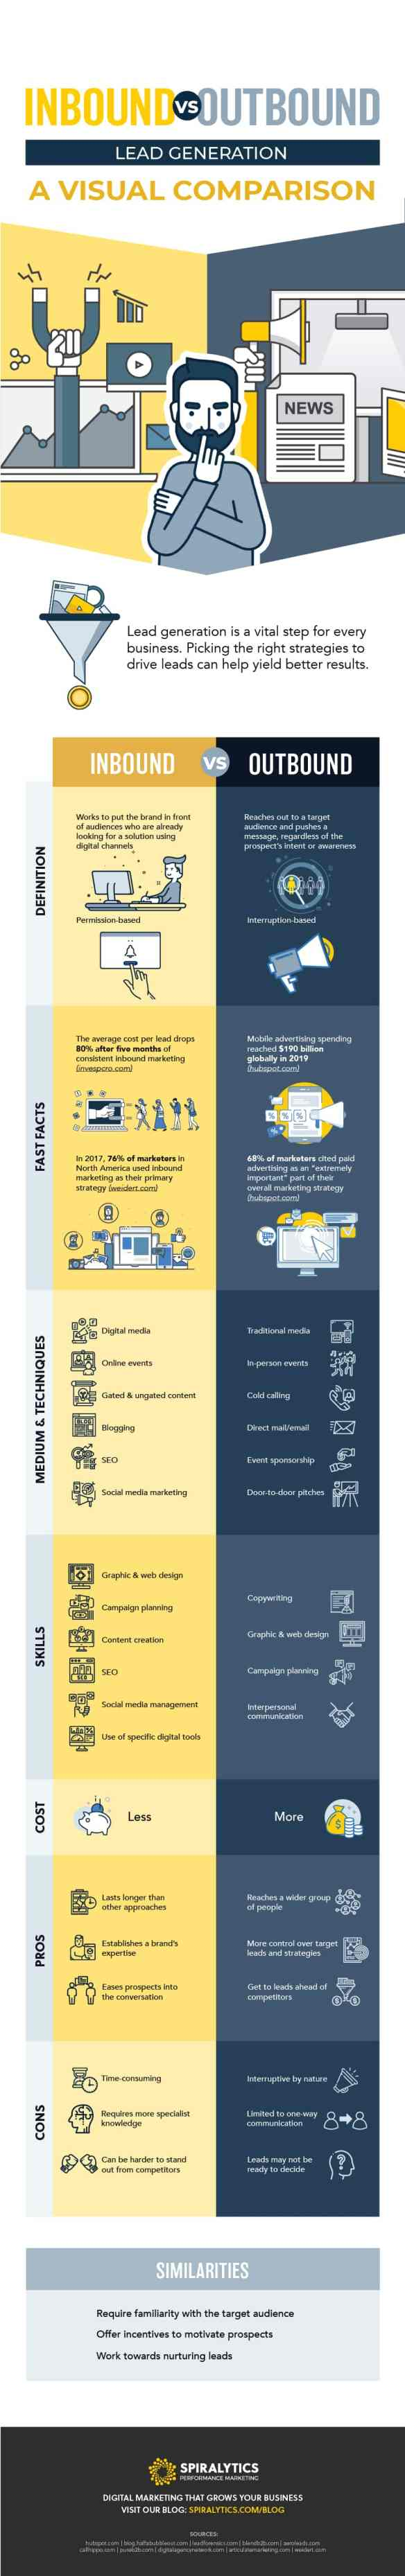 Inbound lead generation vs. outbound lead generation infographic